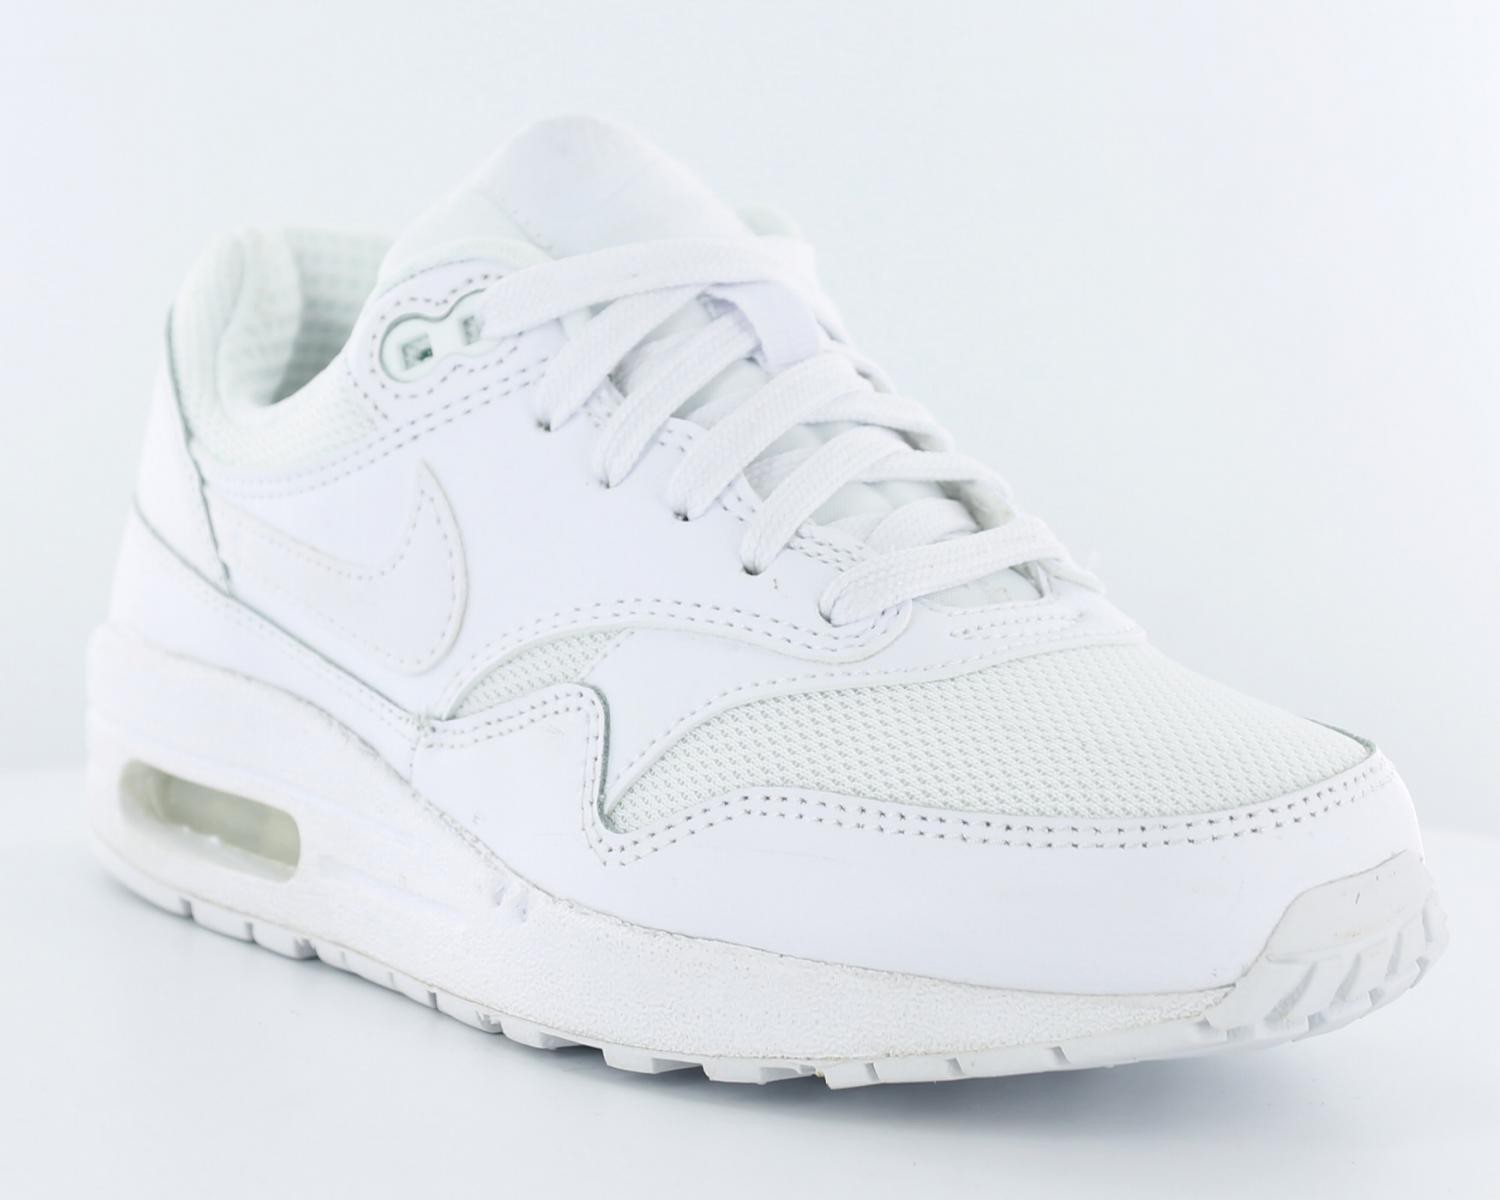 nike air max one blanche femme,Review] Où trouver la Nike ...